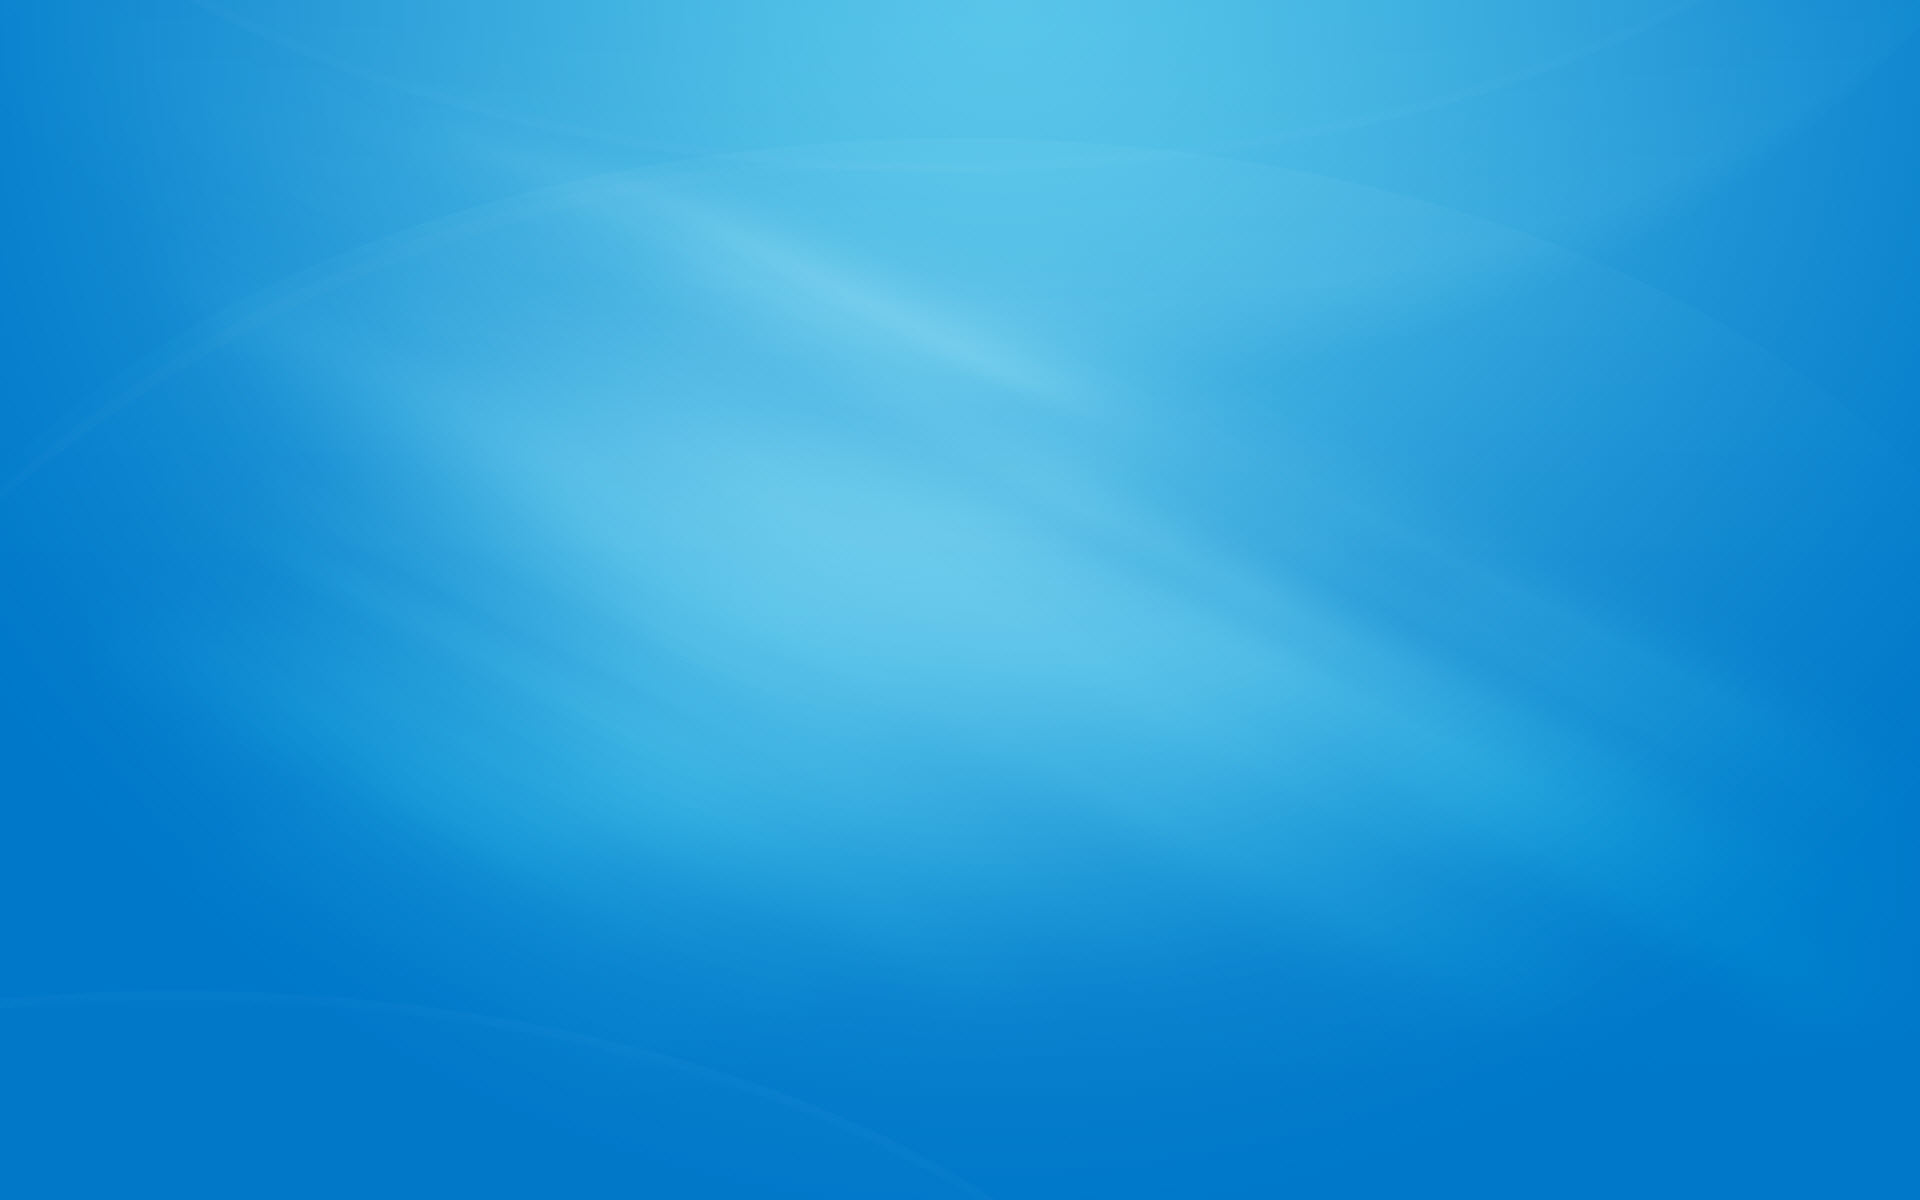 Collection of Blue Background Wallpapers Hd on HDWallpapers